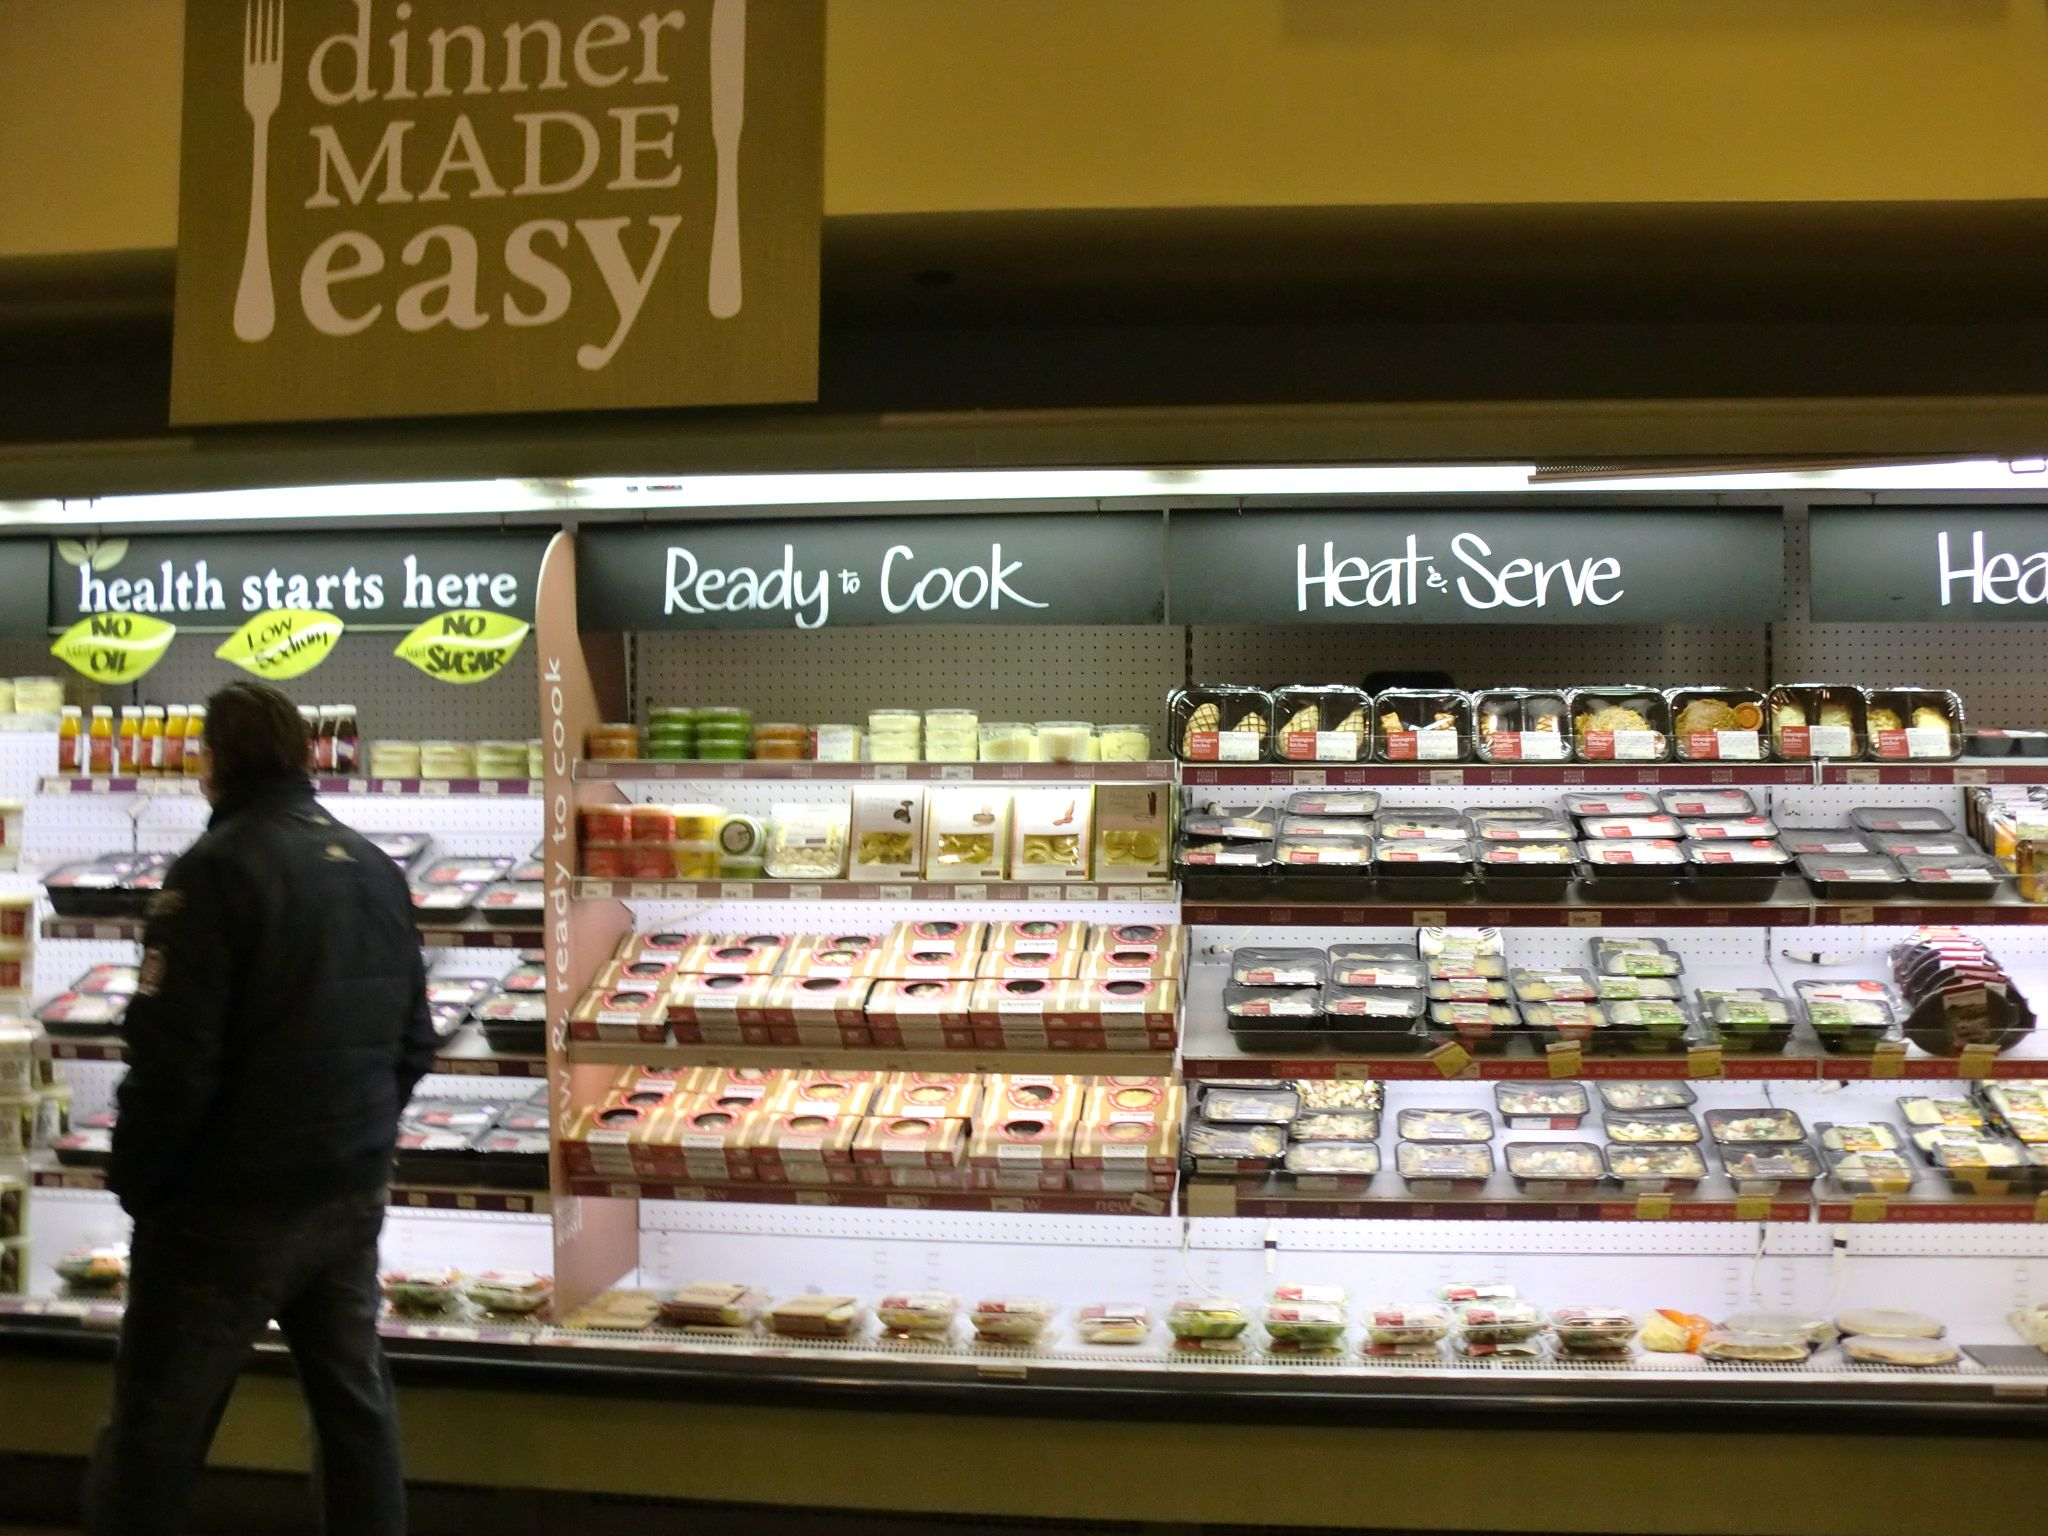 whole foods dinner made easy ready to cook heat serve